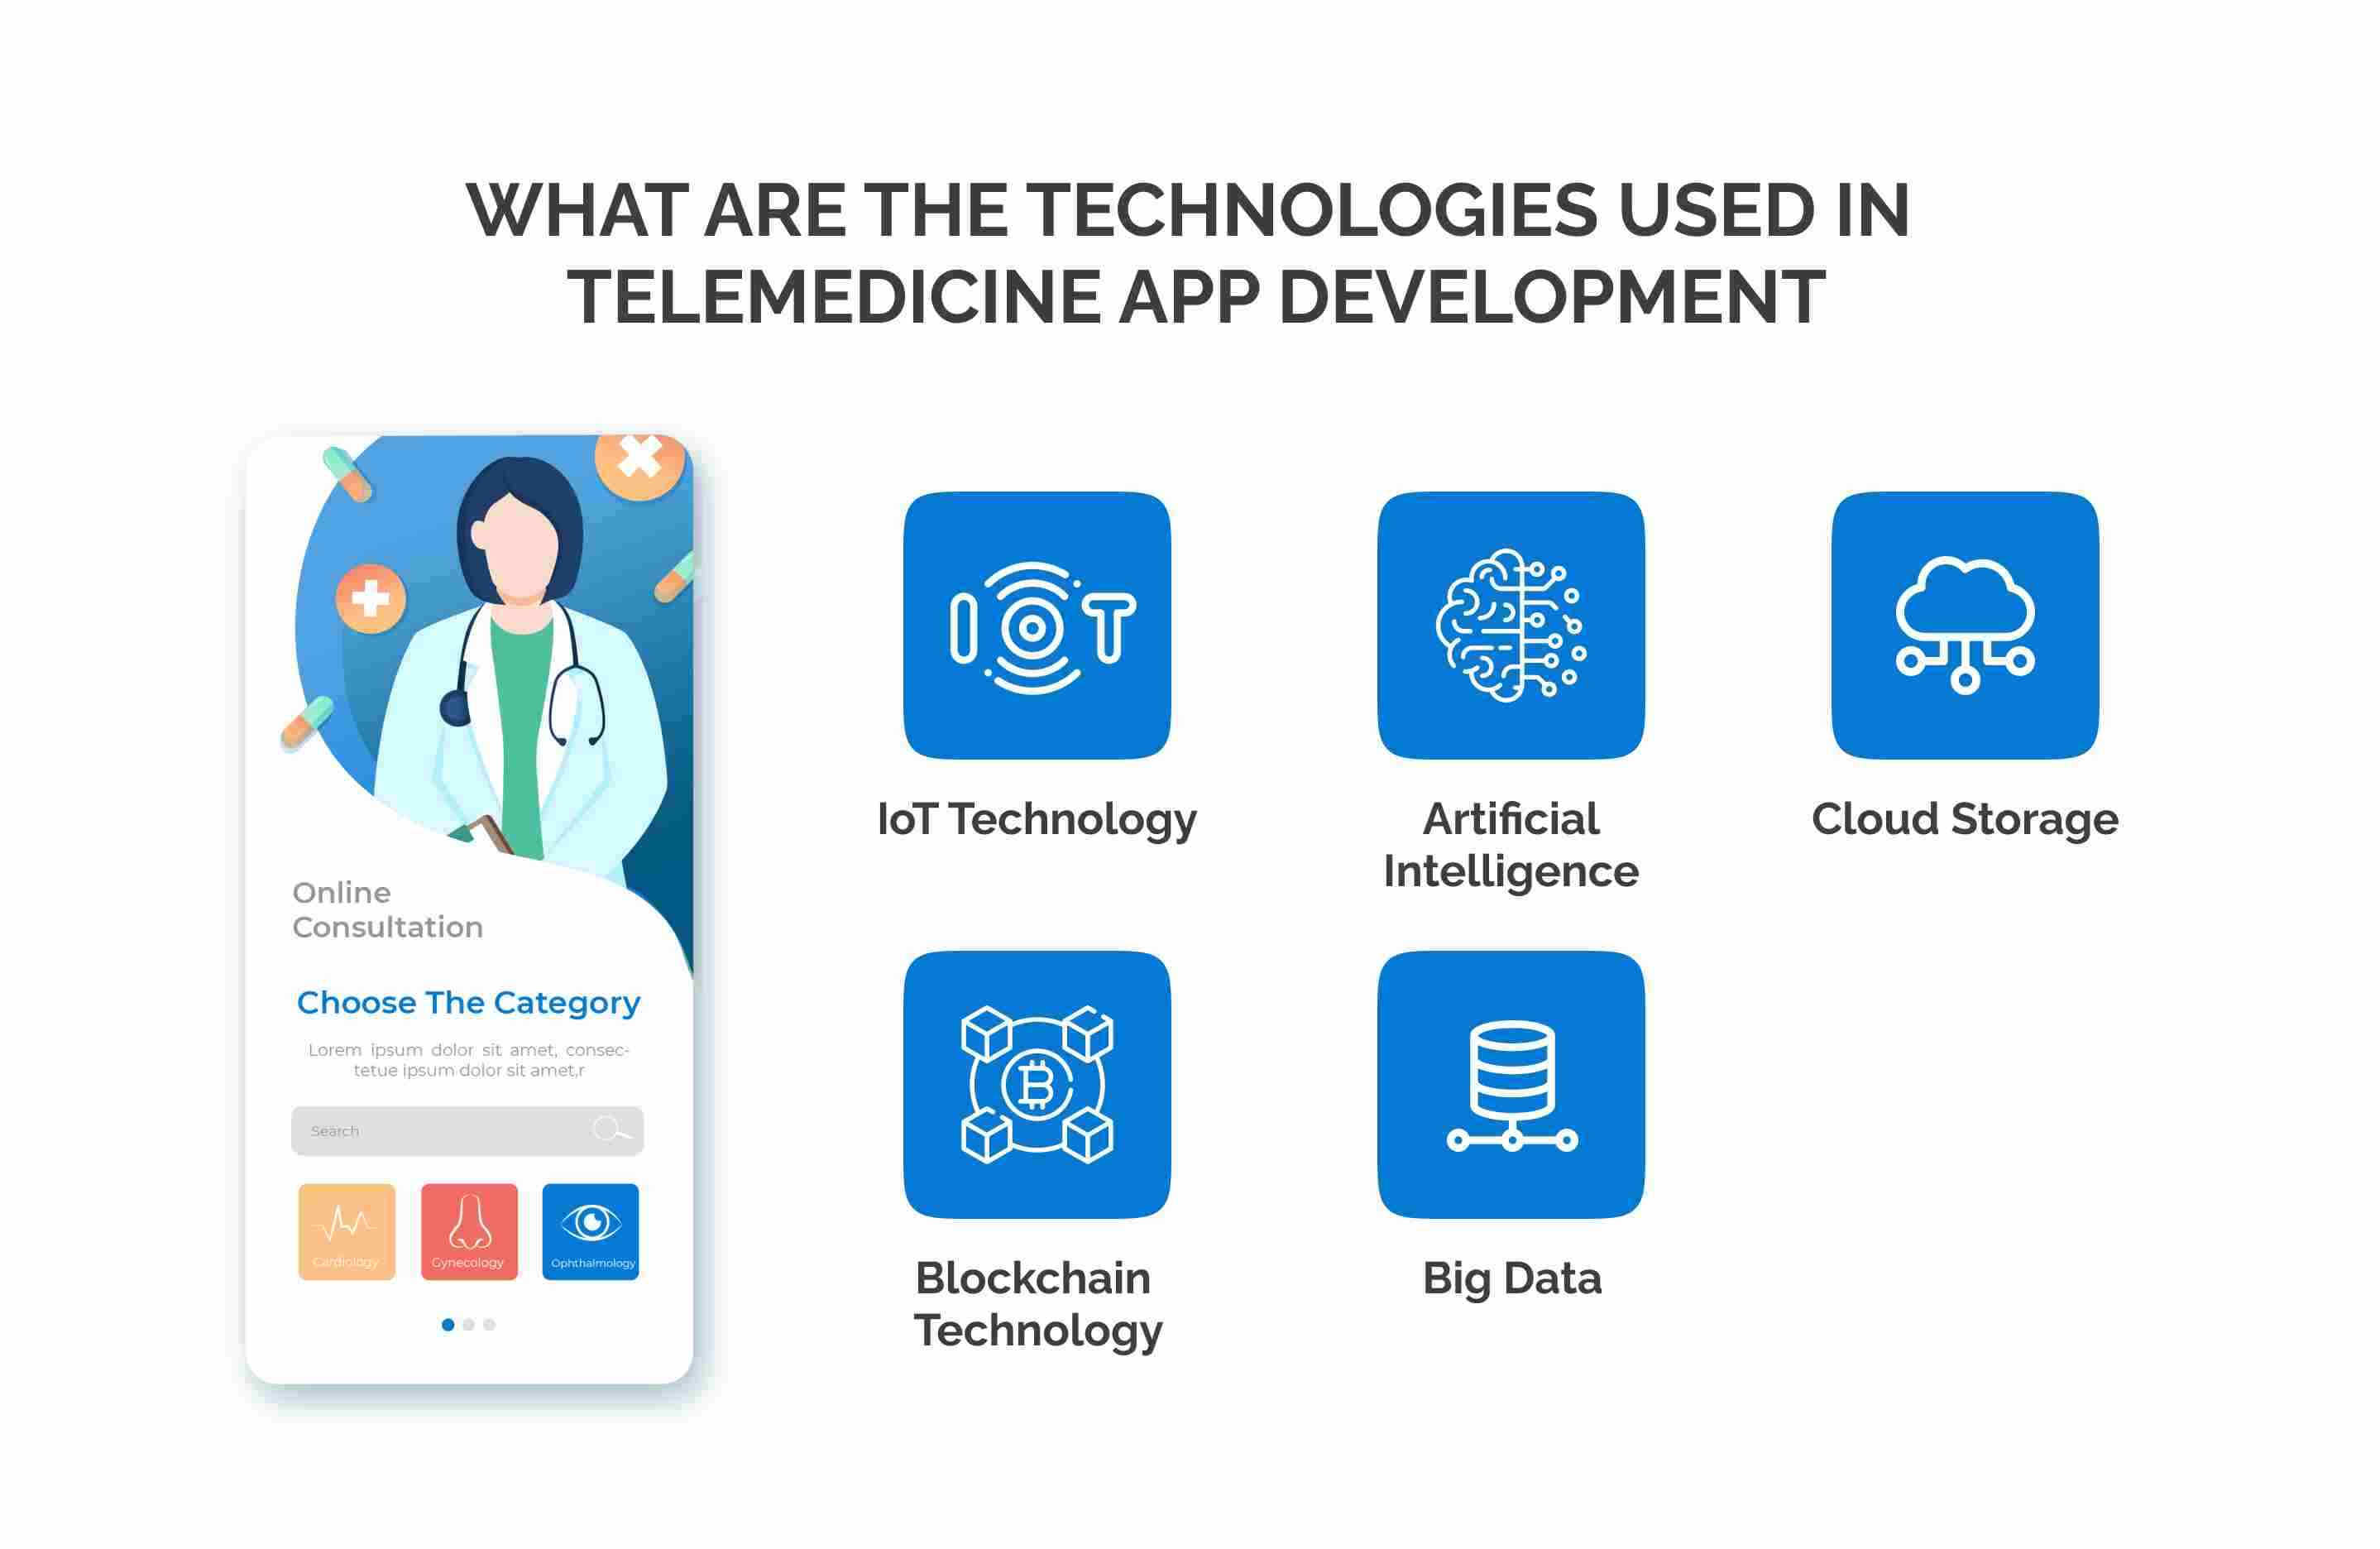 an illustration which describes the technologies used in telemedicine app development